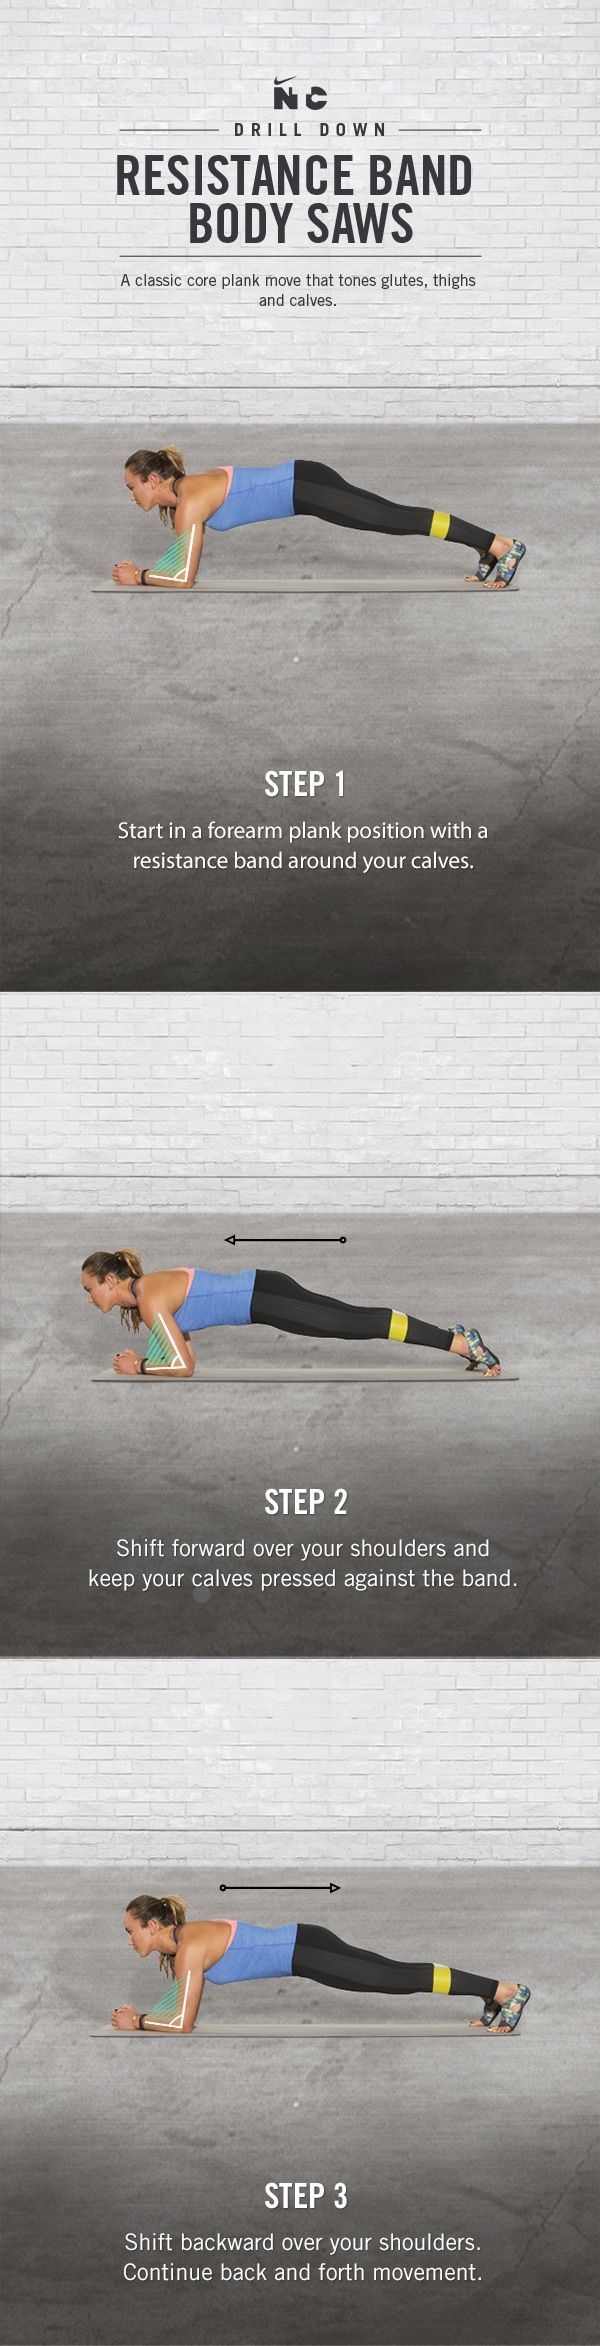 Tone glutes and thighs with Resistance Band Body Saws in Carissa Moore's Beach Balance workout on Nike+ Training Club.